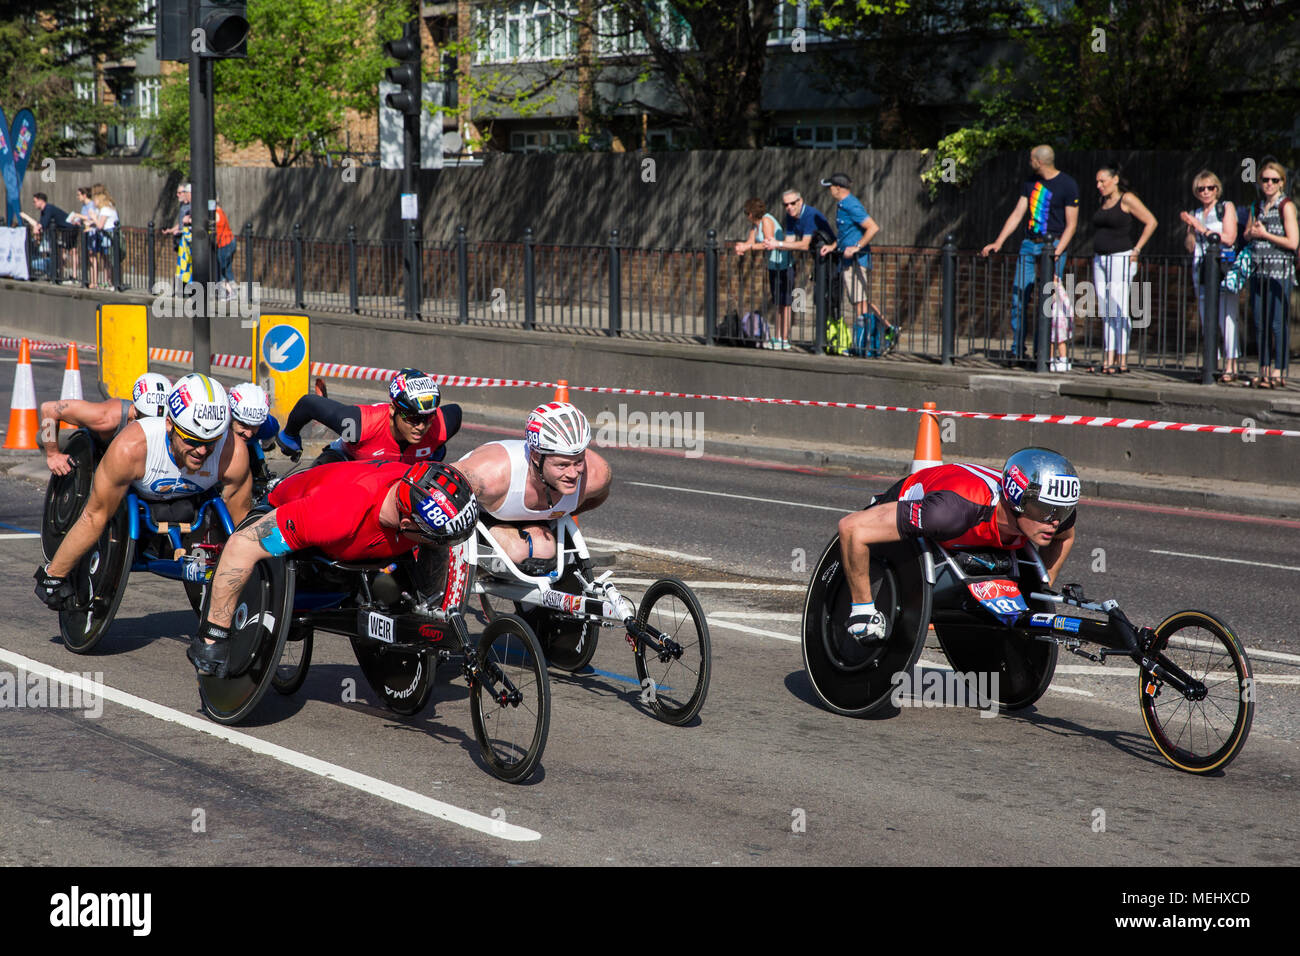 London, UK. 22nd April, 2018. David Weir (c) of Great Britain, eventual winner of the men's wheelchair (T53/T54) event, competes in the 2018 Virgin Money London Marathon. Marcel Hug (r) of Switzerland finished second. Credit: Mark Kerrison/Alamy Live News Stock Photo